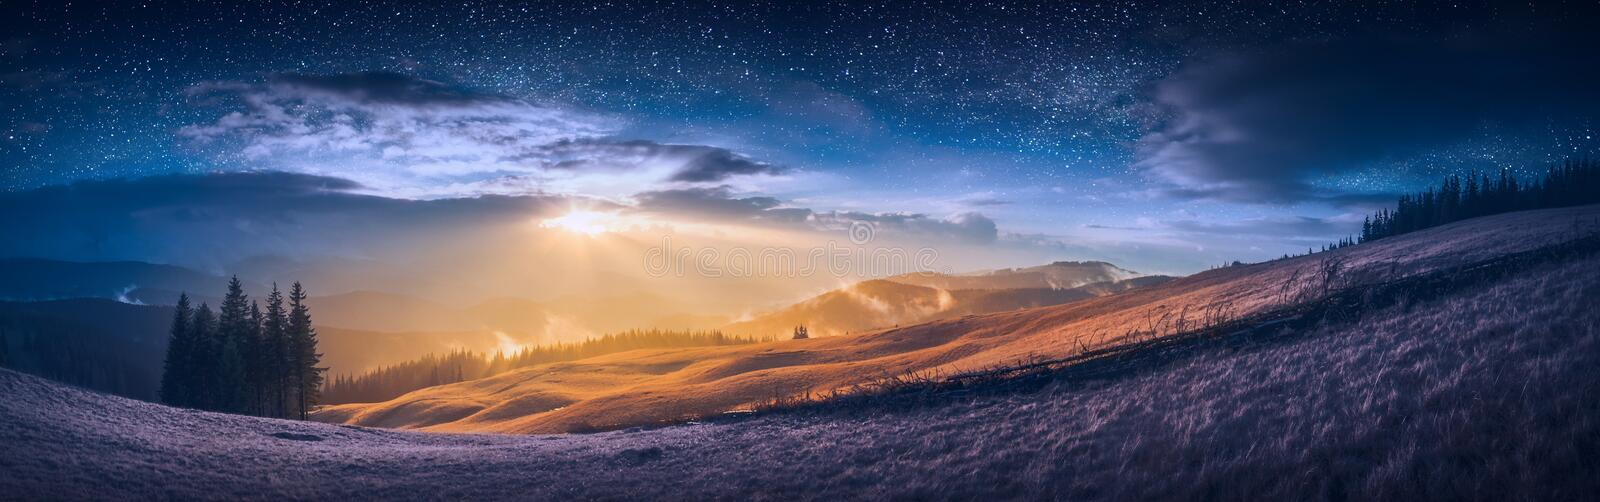 The meeting of day and night in a mountain valley stock photography